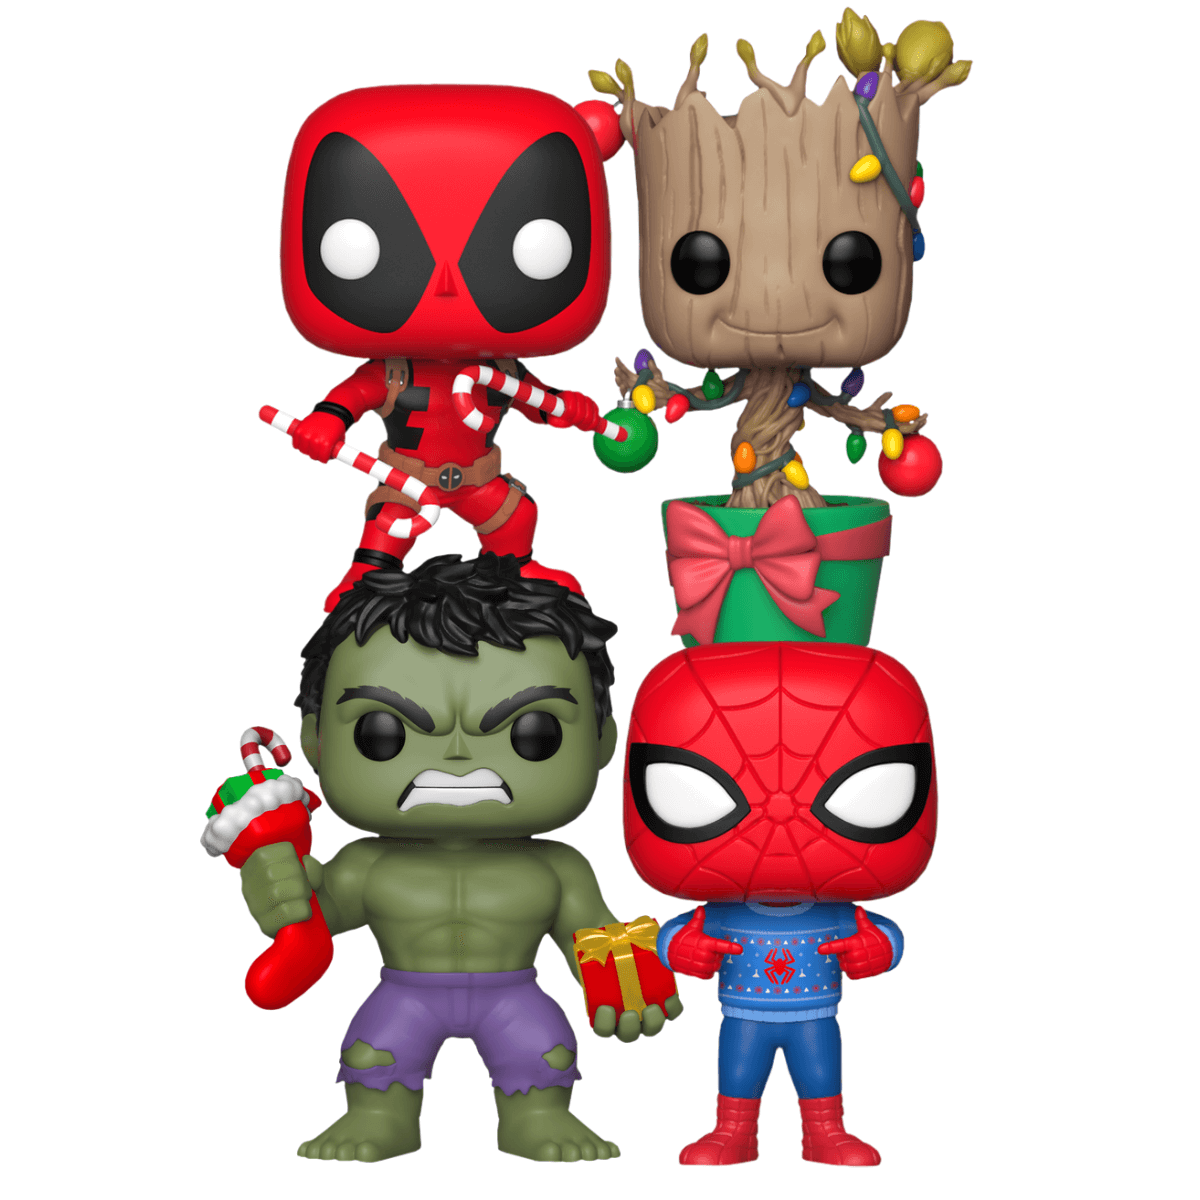 Marvel Christmas.Marvel Holiday Pop Vinyl Pop Collection